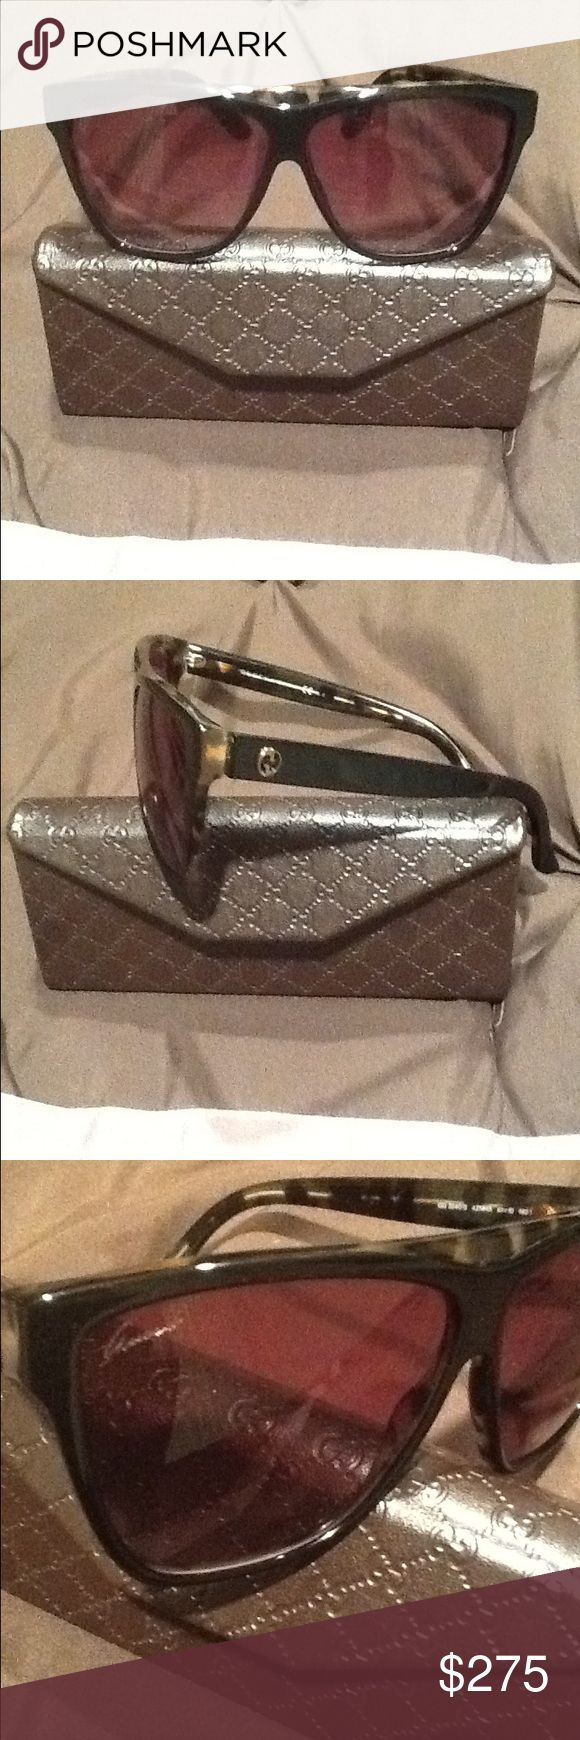 Gucci sunglasses Tortoise color case and cleaning cloth Gucci Accessories Sunglasses